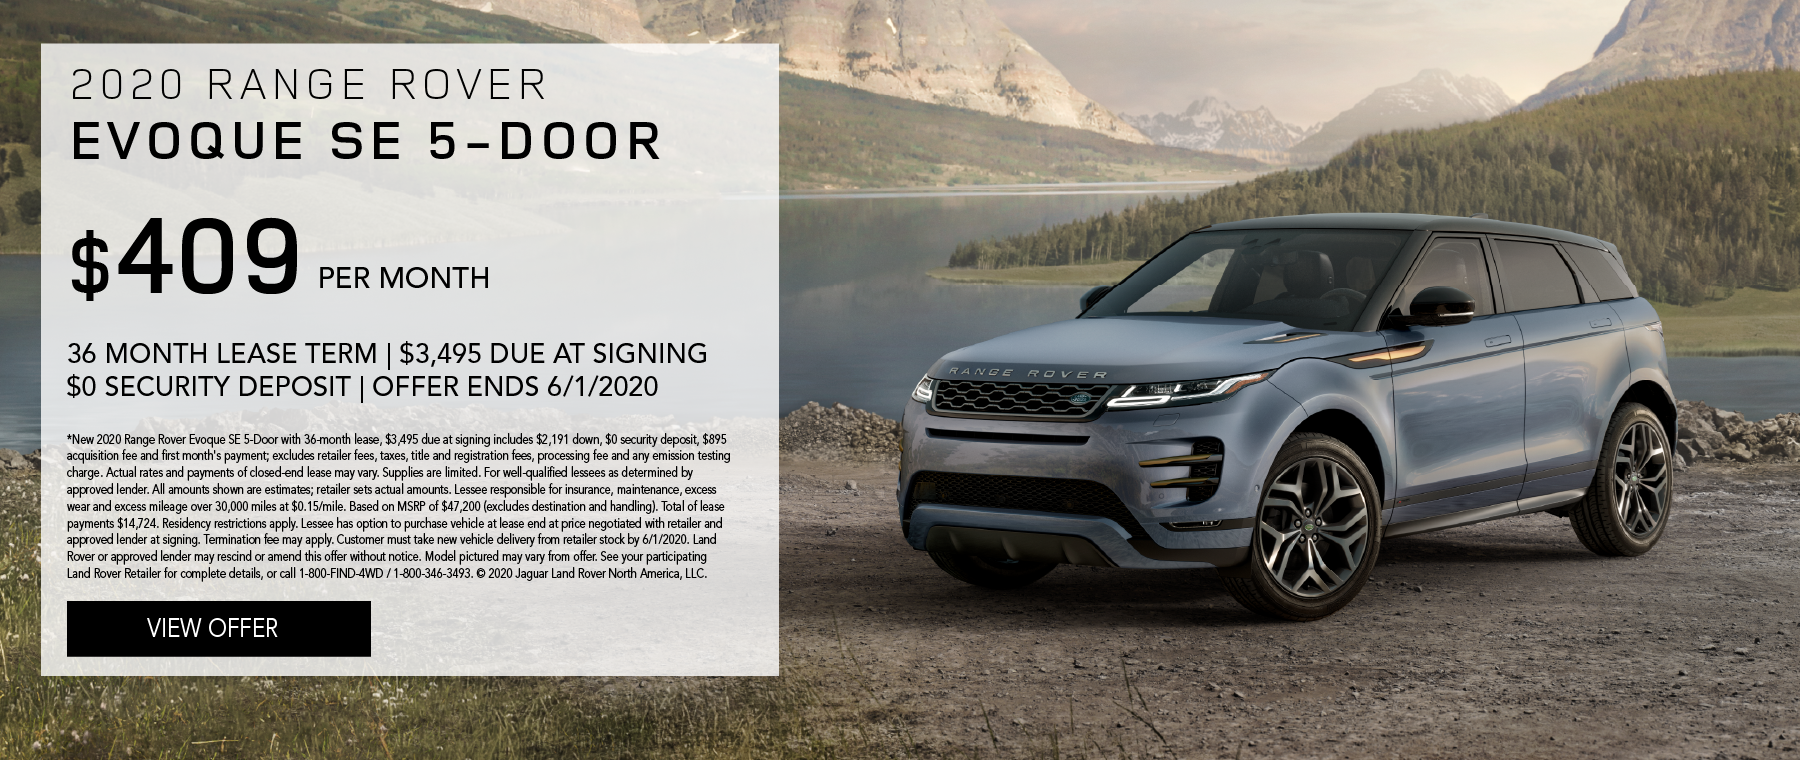 2020 RANGE ROVER EVOQUE SE 5-DOOR. $409 PER MONTH. 36 MONTH LEASE TERM. $3,495 CASH DUE AT SIGNING. $0 SECURITY DEPOSIT. 10,000 MILES PER YEAR. EXCLUDES RETAILER FEES, TAXES, TITLE AND REGISTRATION FEES, PROCESSING FEE AND ANY EMISSION TESTING CHARGE. OFFER ENDS 6/1/2020.